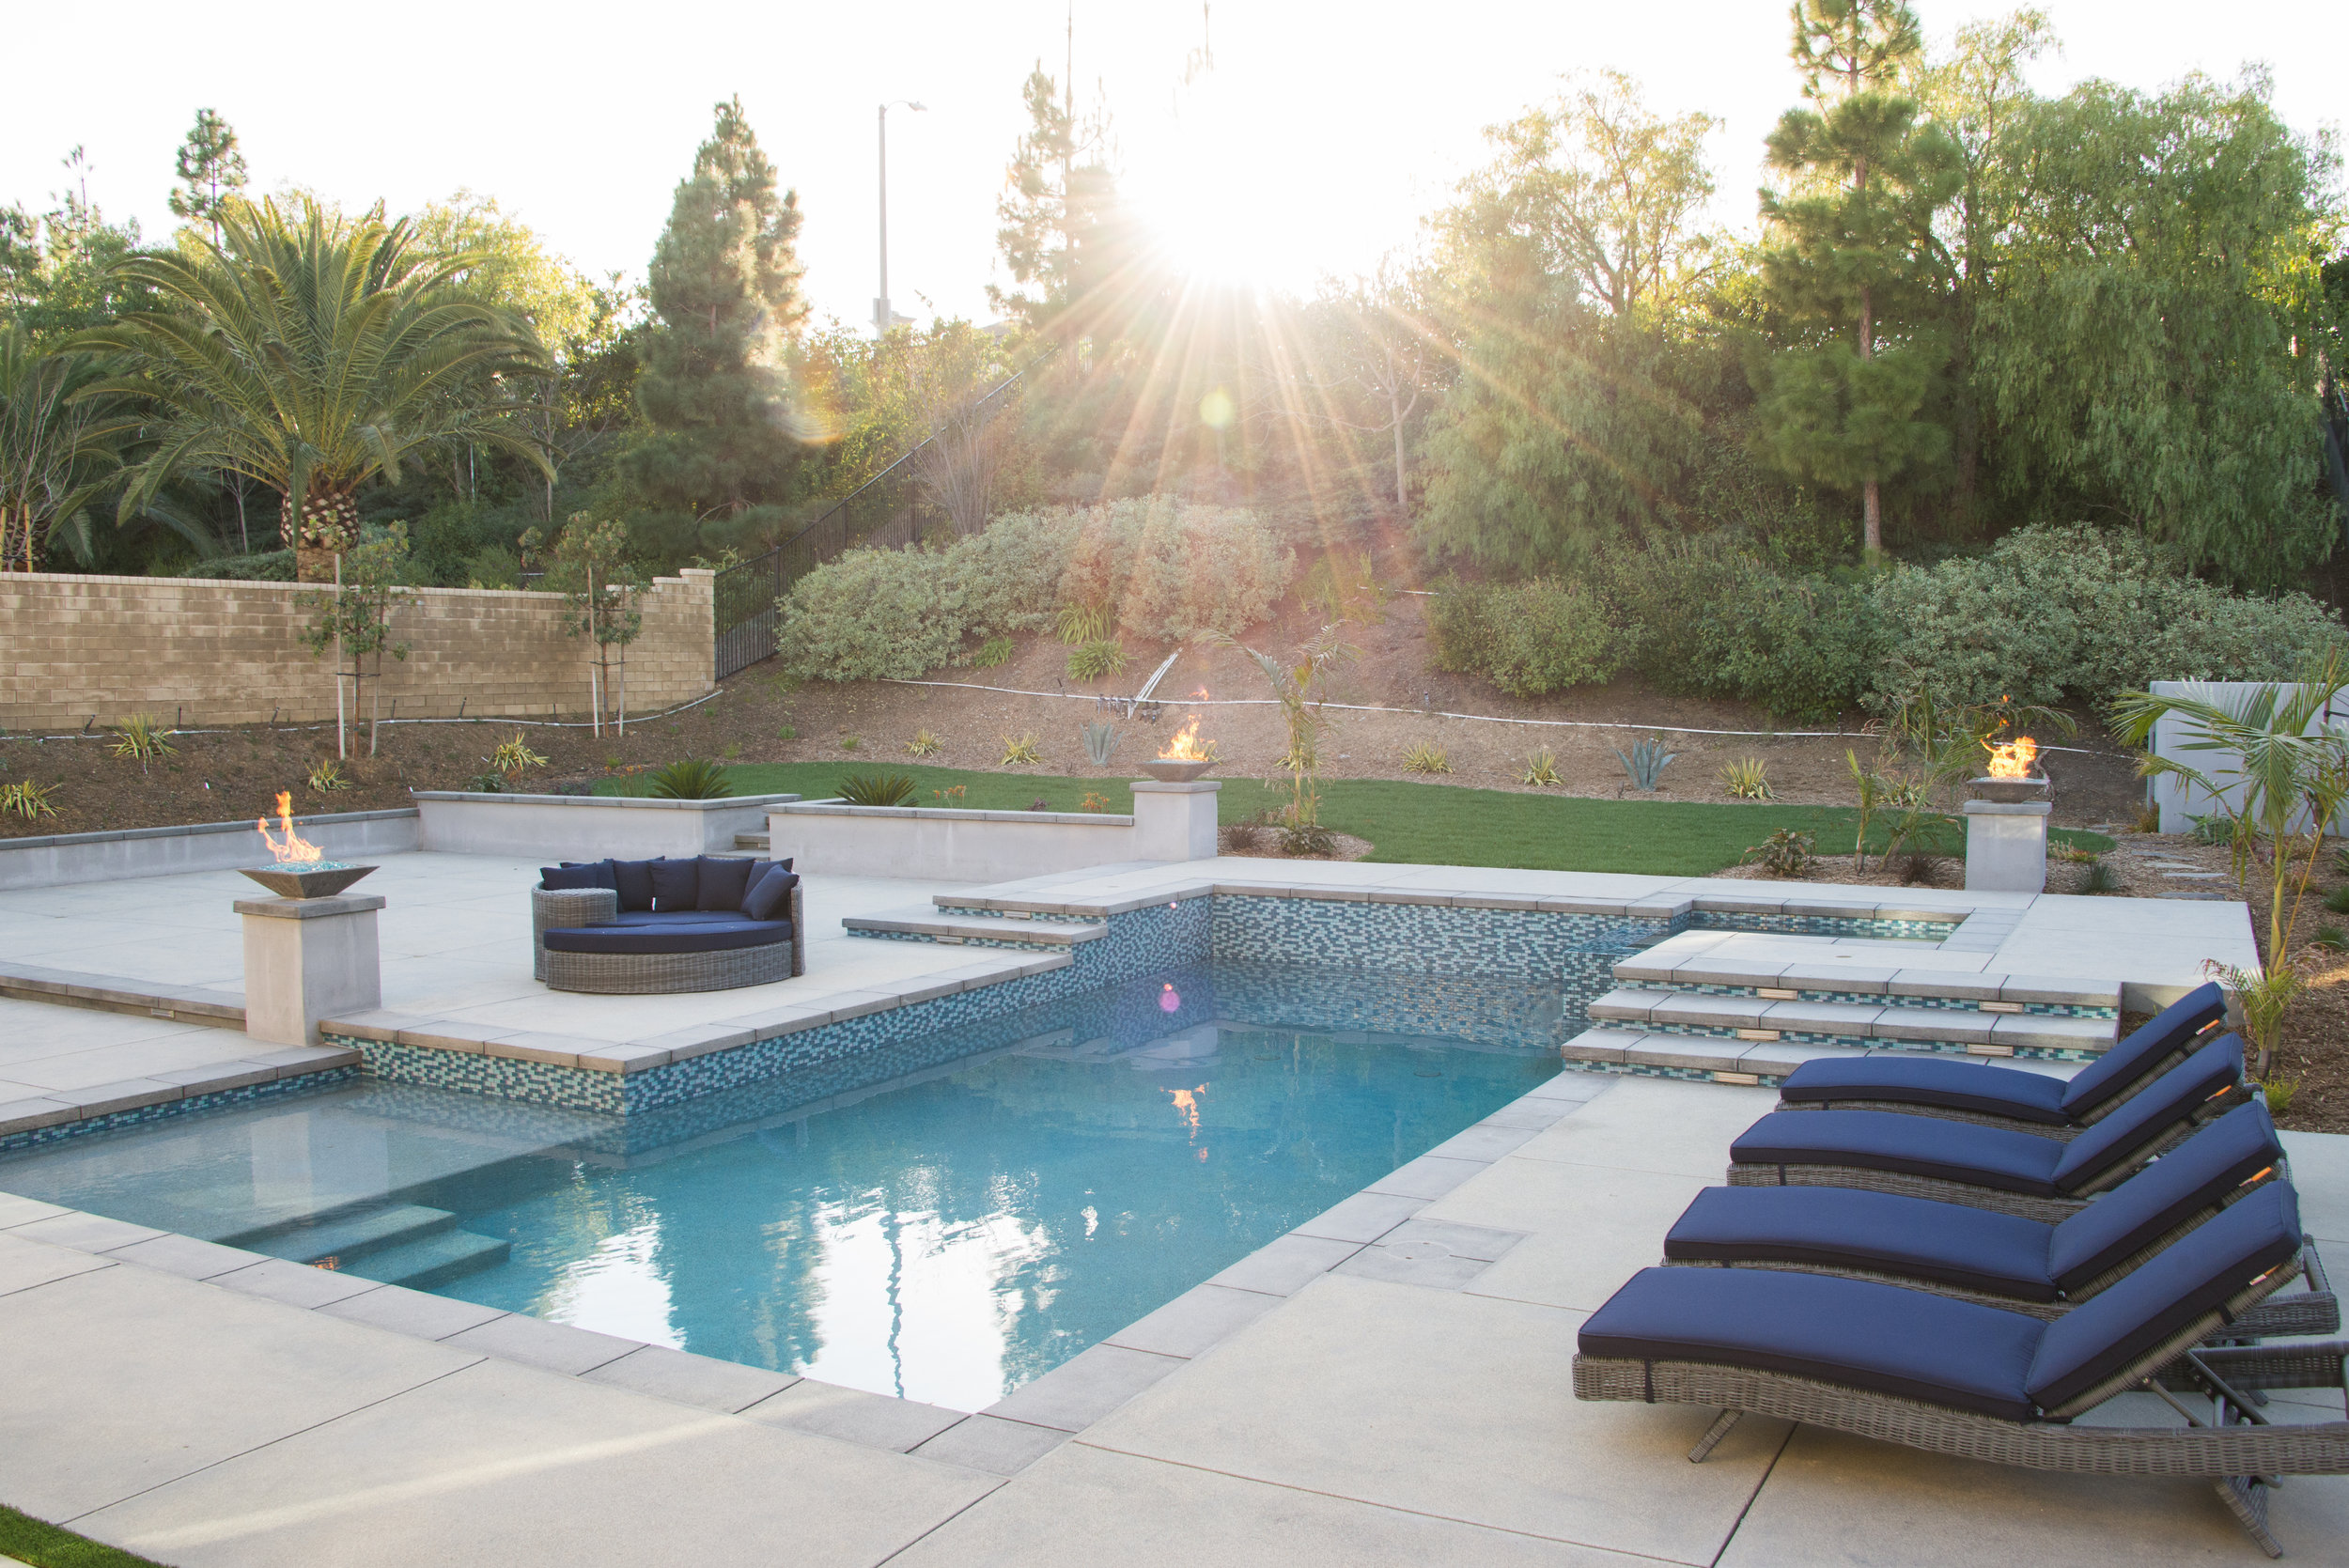 Get Your Swimming Pool Ready For Spring! — California Pools